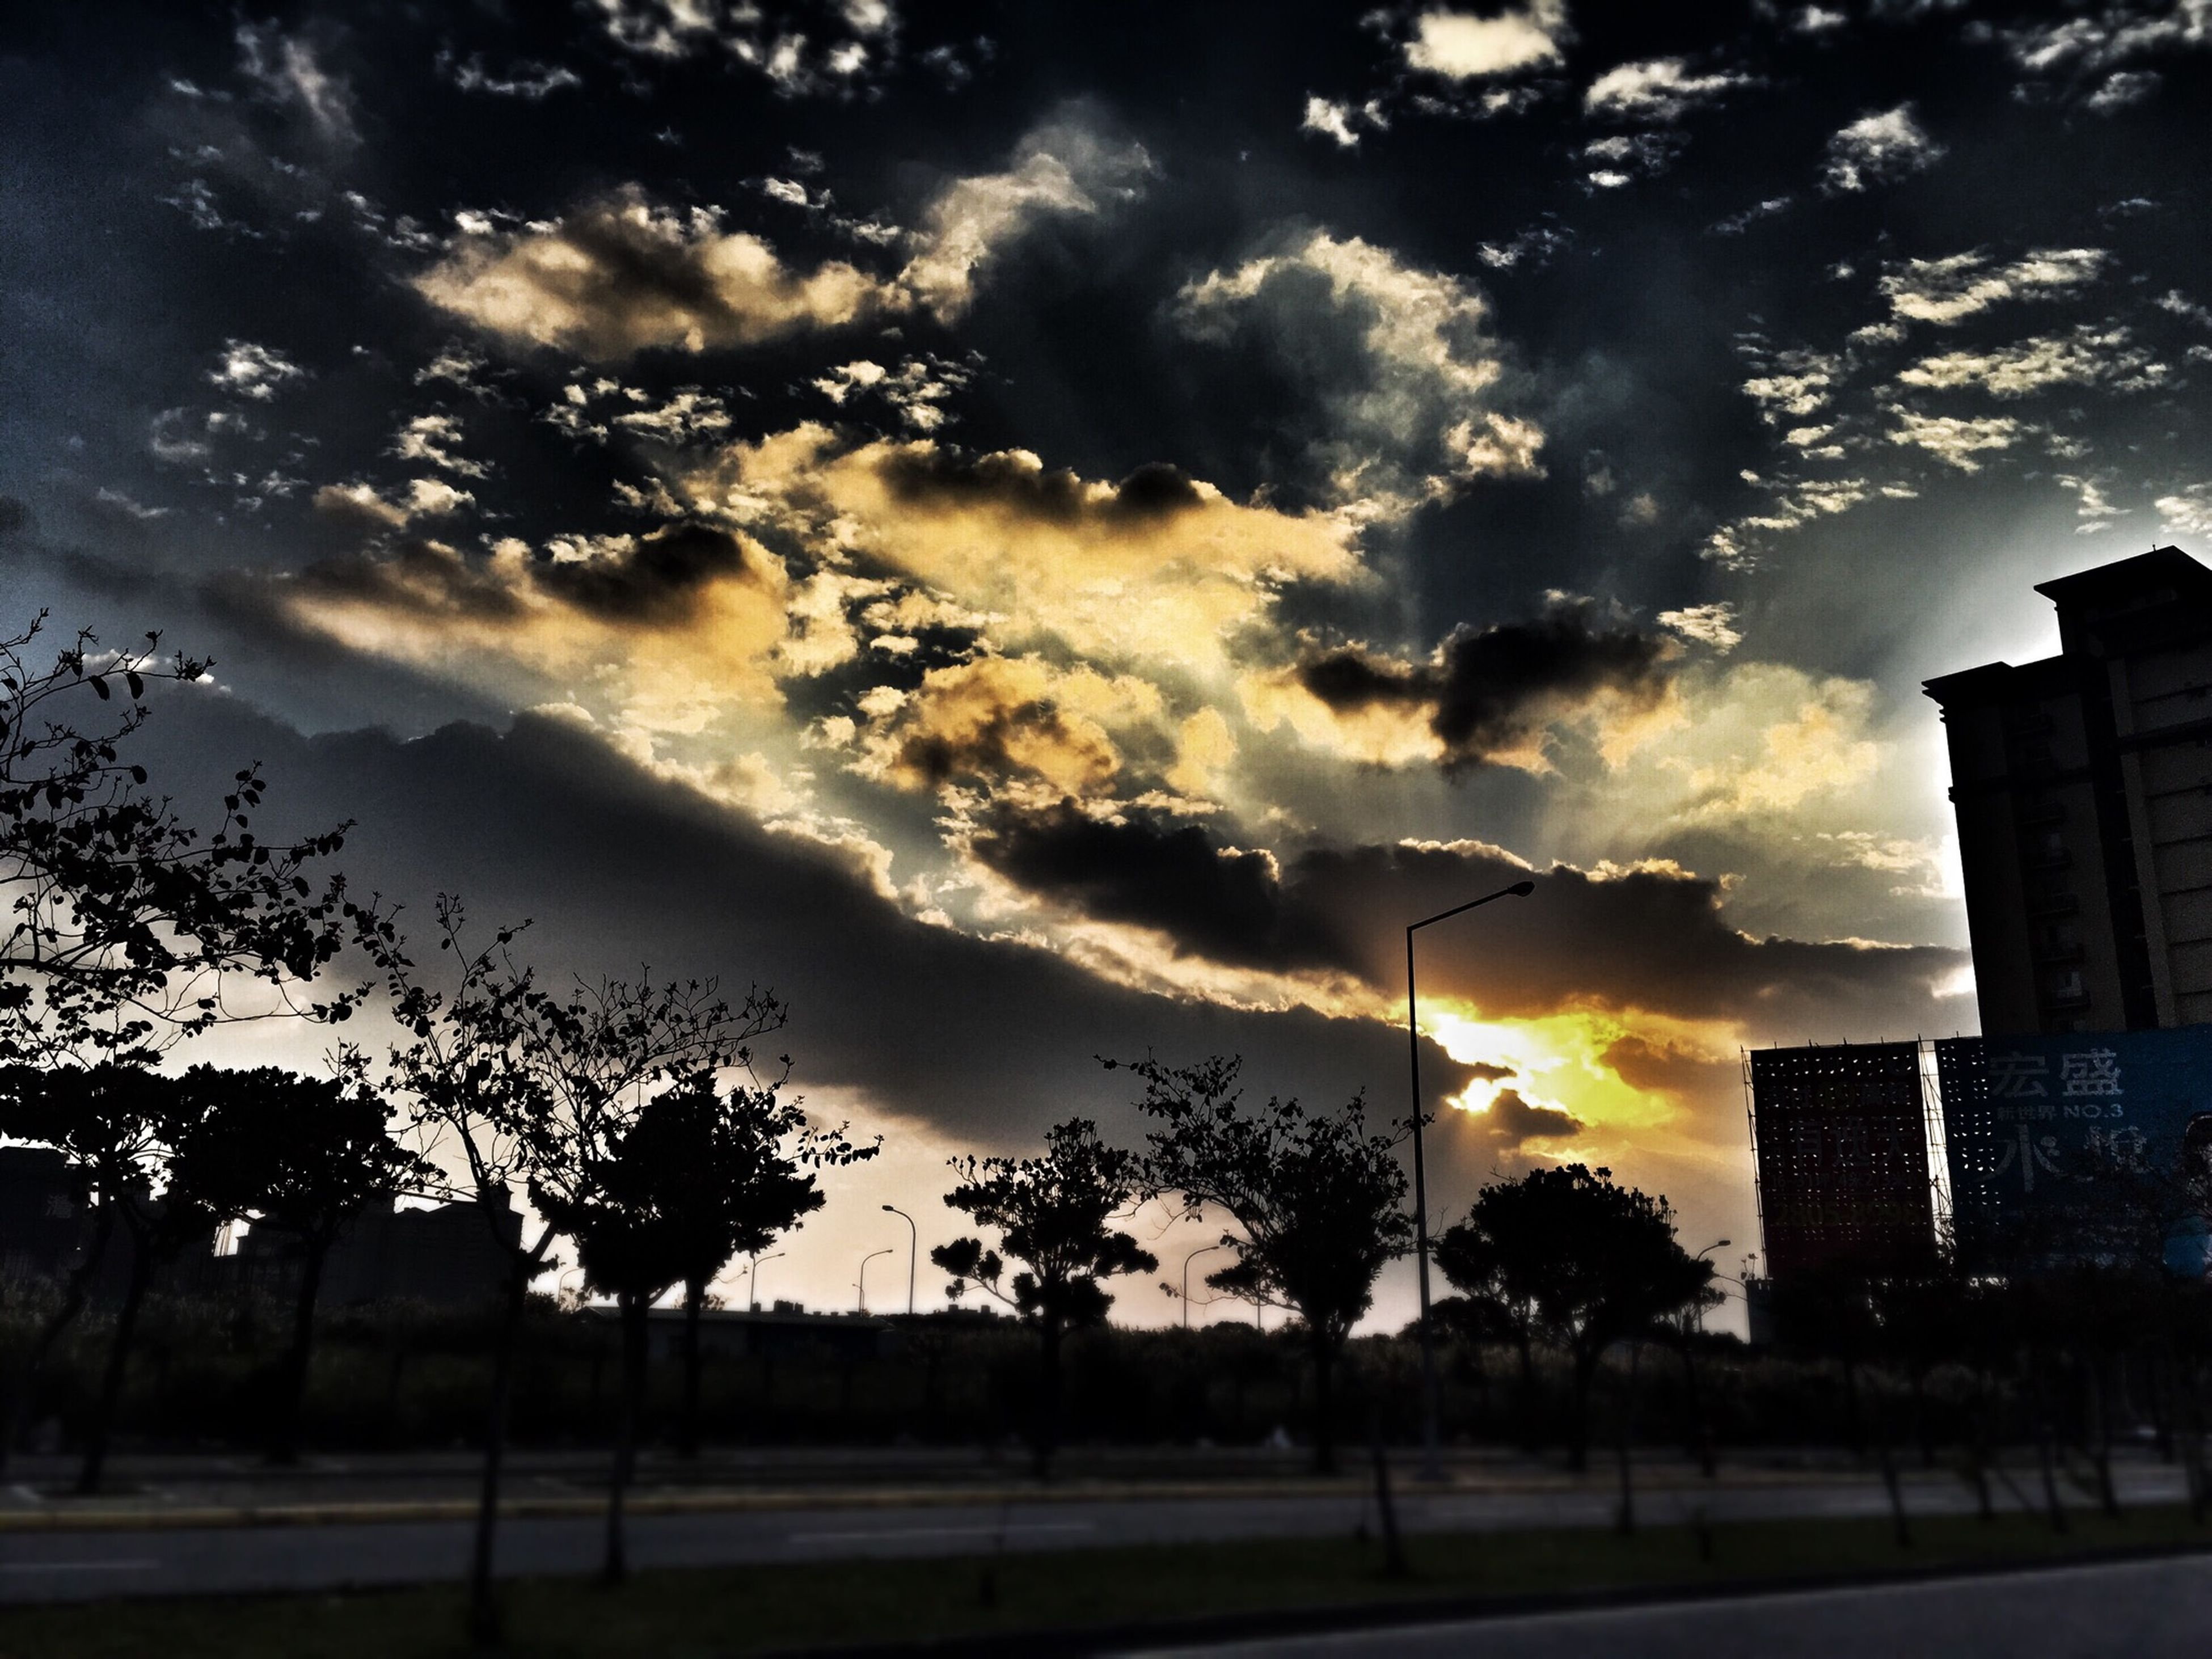 sky, building exterior, tree, sunset, cloud - sky, architecture, built structure, silhouette, cloudy, cloud, nature, city, beauty in nature, sunlight, outdoors, tranquility, no people, growth, scenics, low angle view